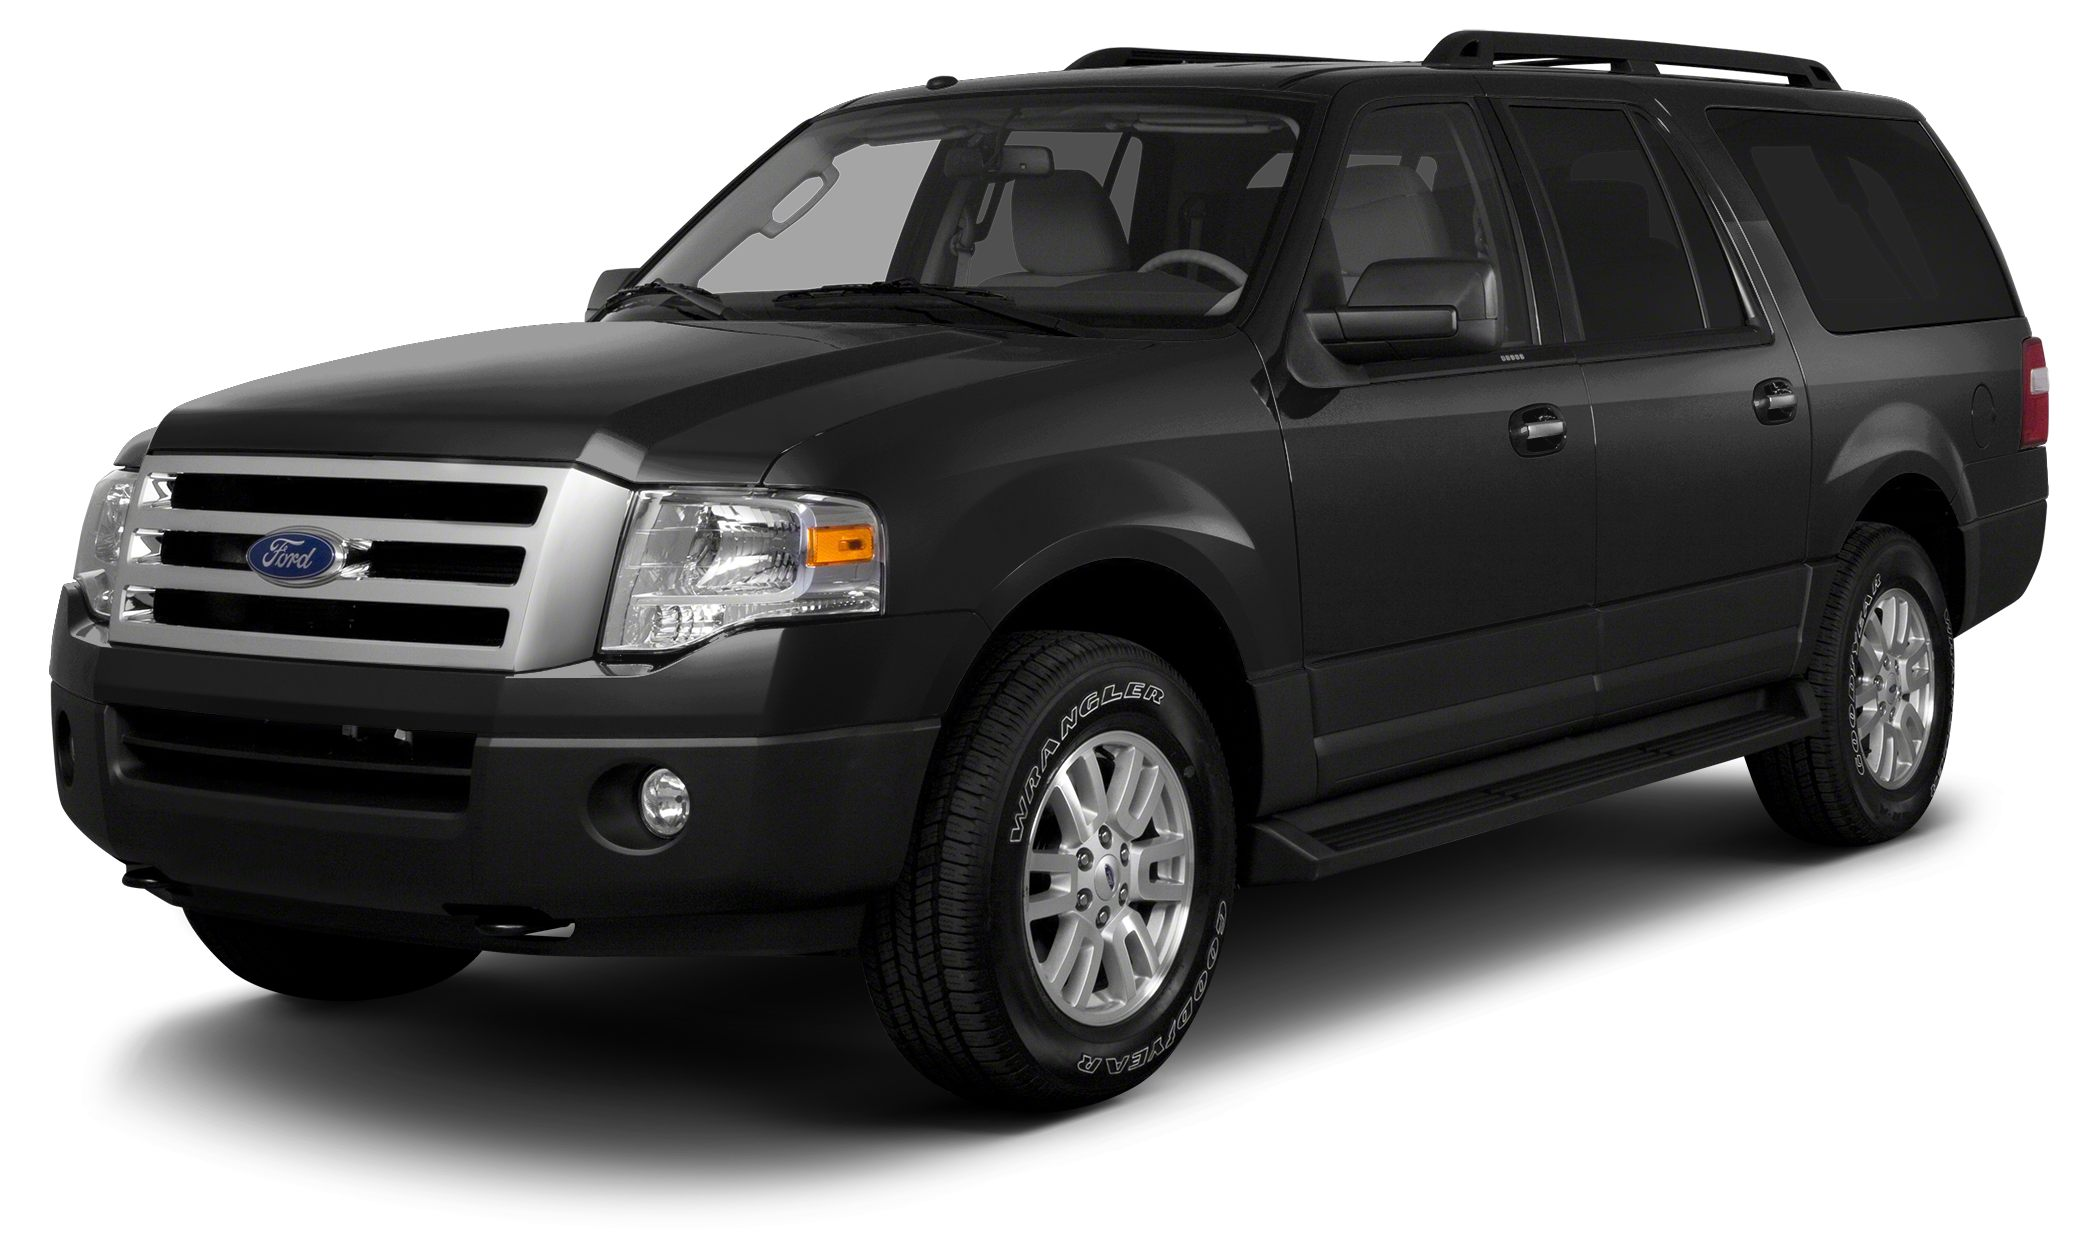 2013 ford expedition el limited cars and vehicles tracy ca. Black Bedroom Furniture Sets. Home Design Ideas